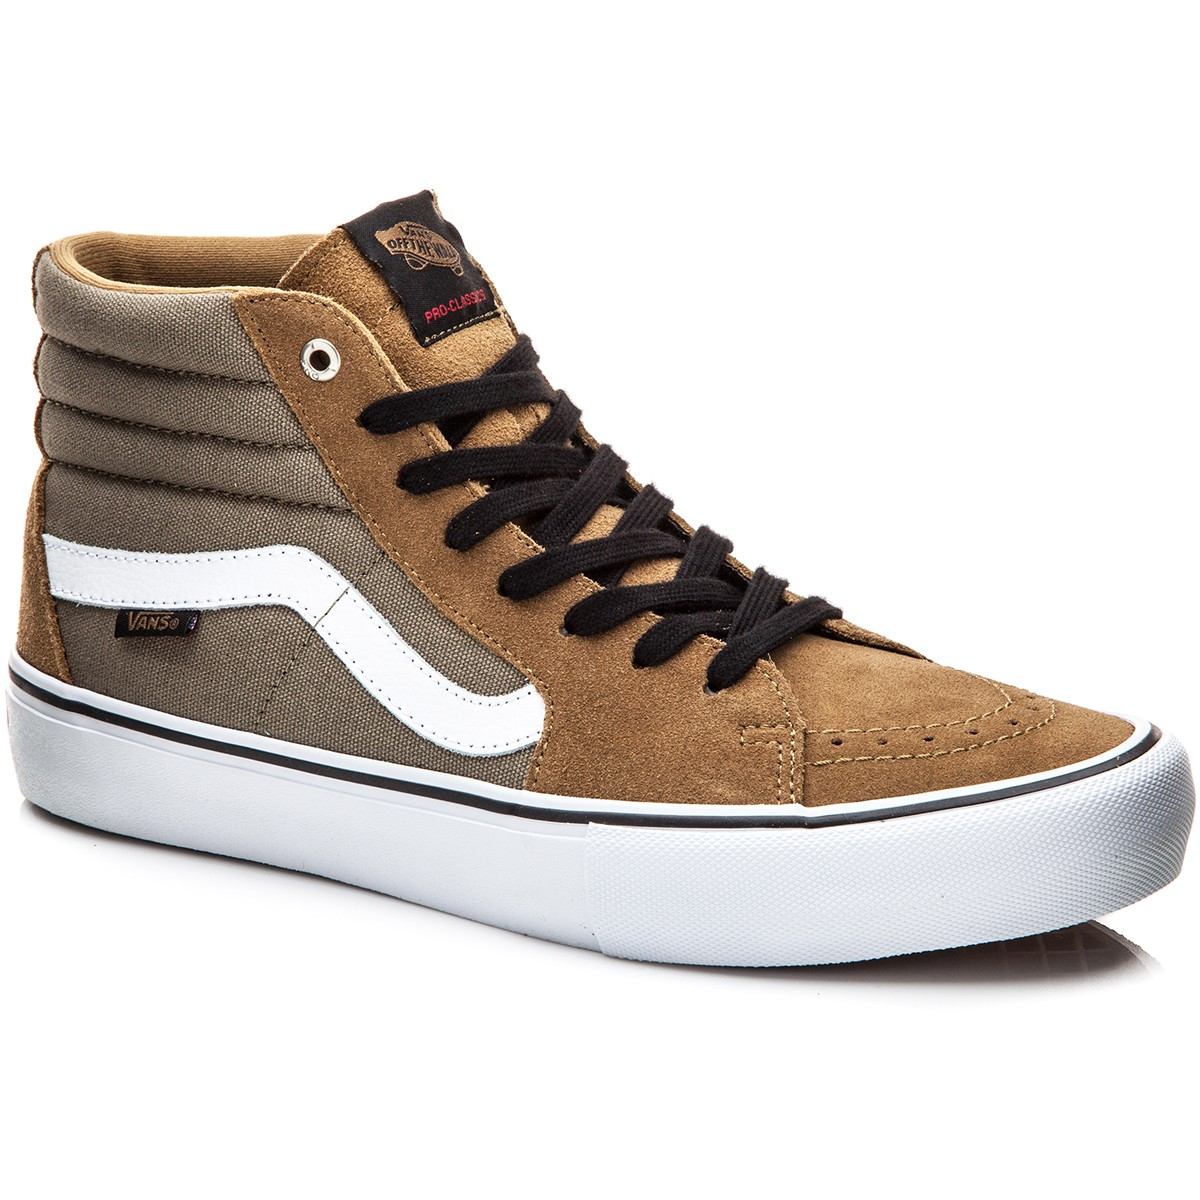 Vans Sk8-Hi Pro Shoes - Covert Green/White - 8.0